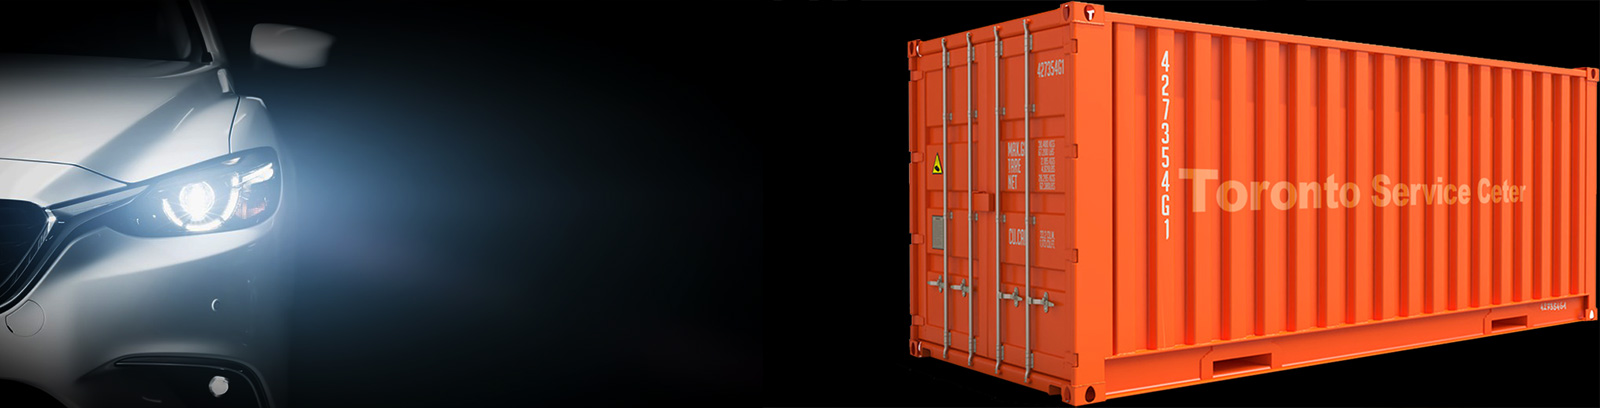 car-storage-containers